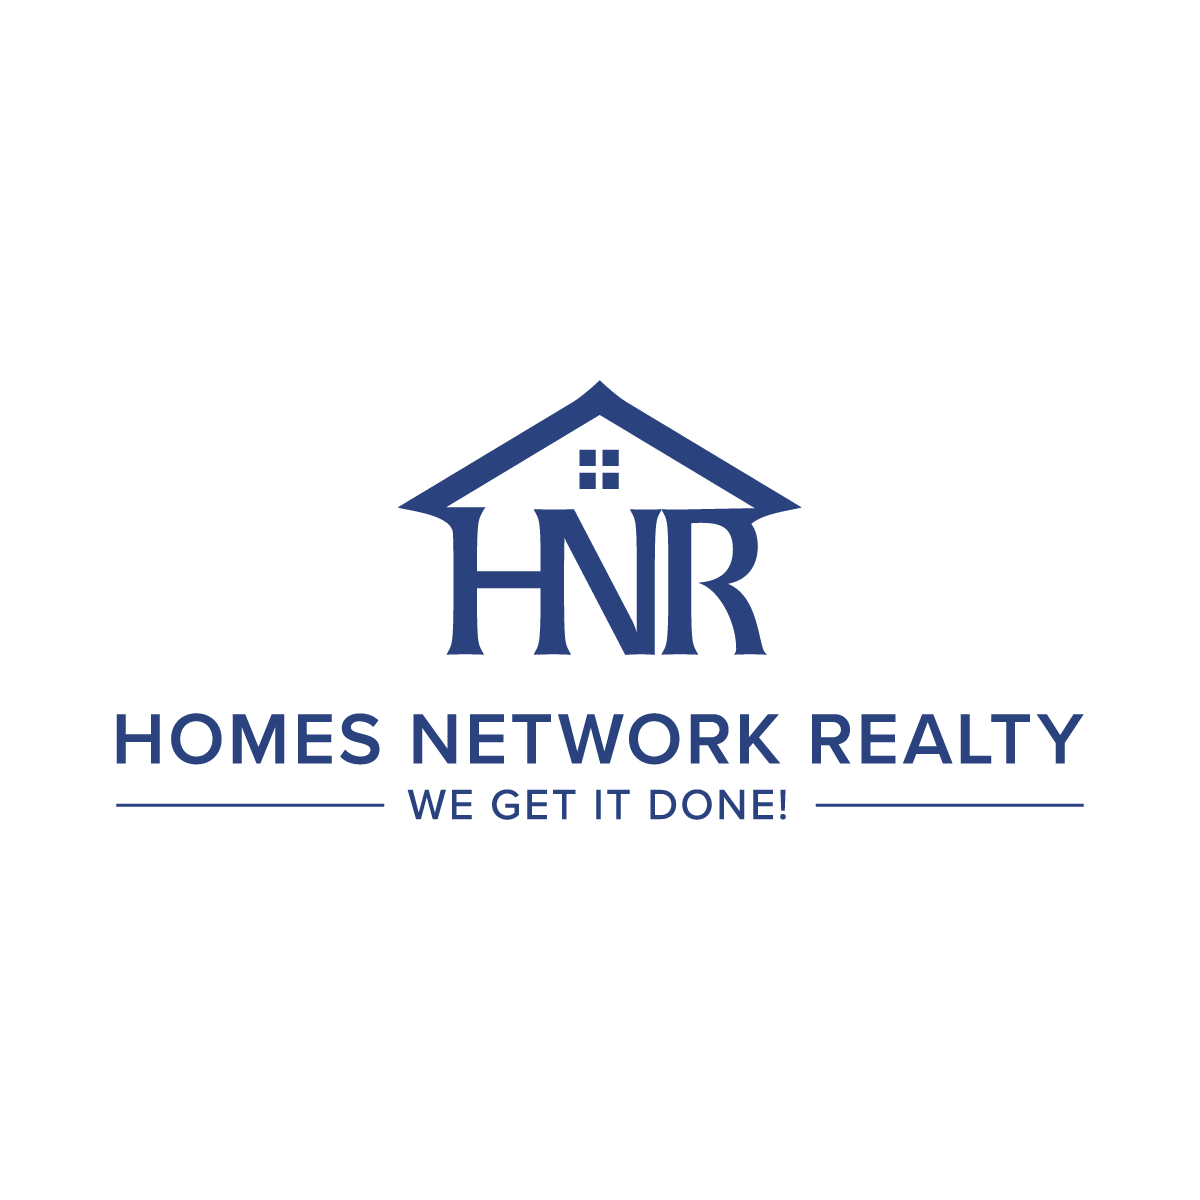 Homes Network Realty Inc